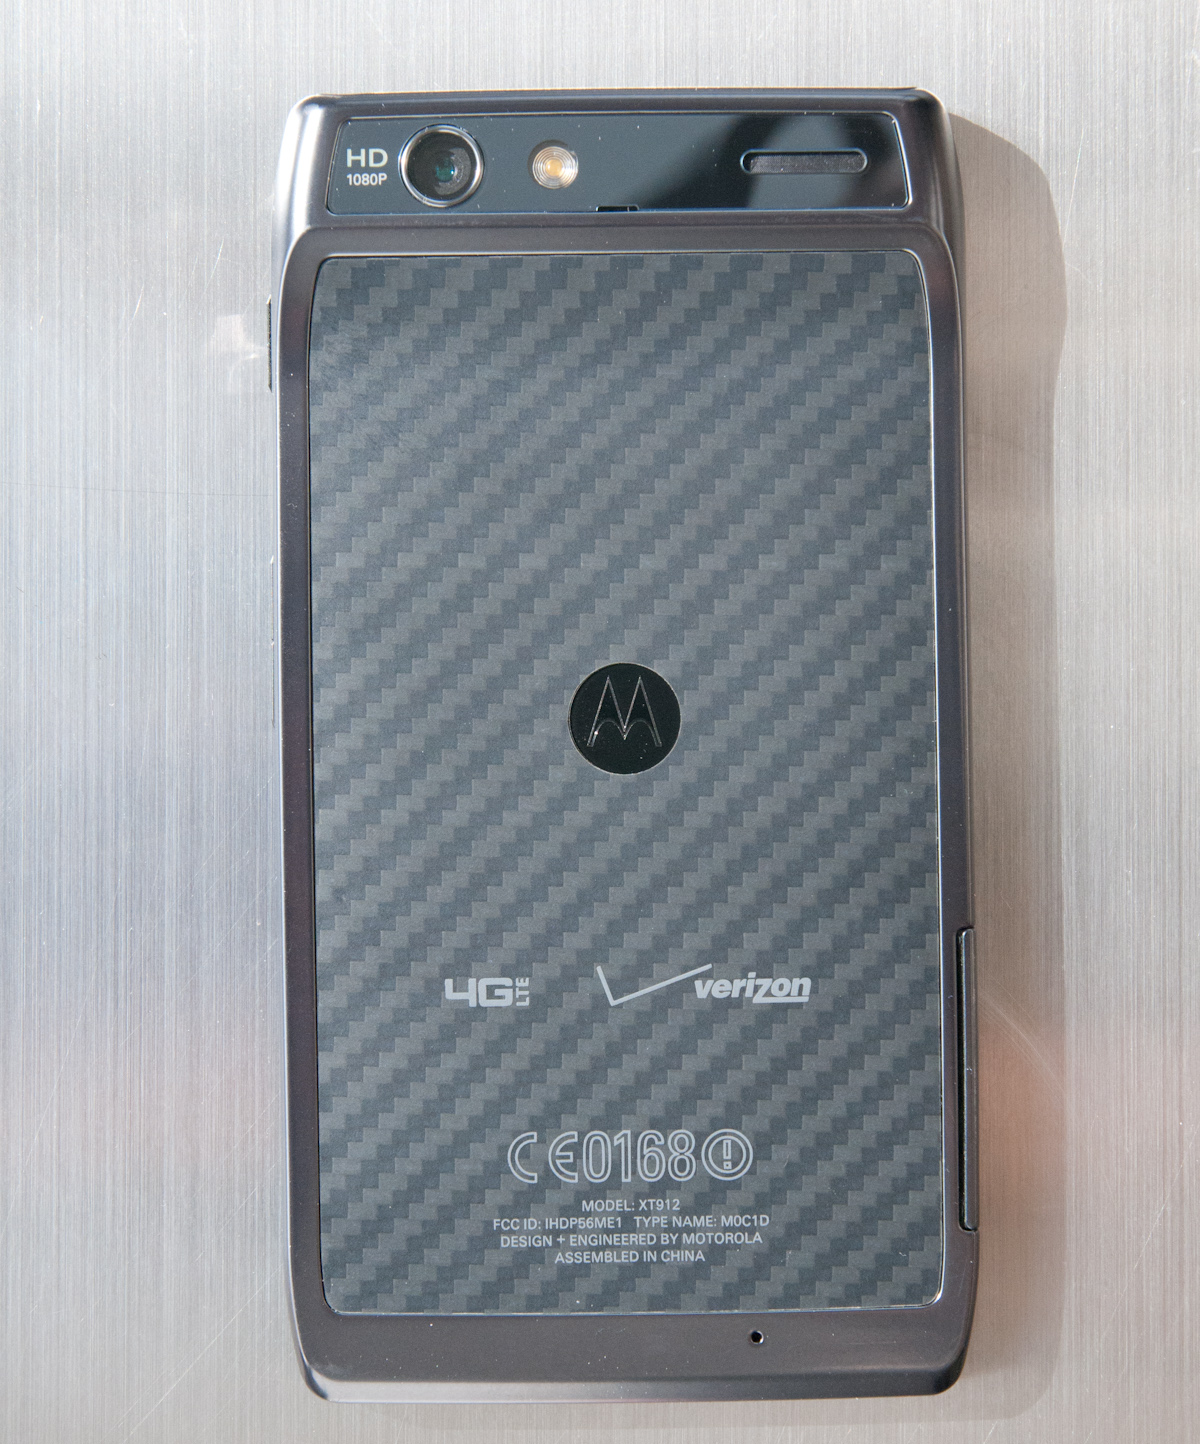 Droid Turbo 2 How To Block Calls : 2016 I Have To Admit That I Like The  Direction That Motorola Is Taking With Its Industrial